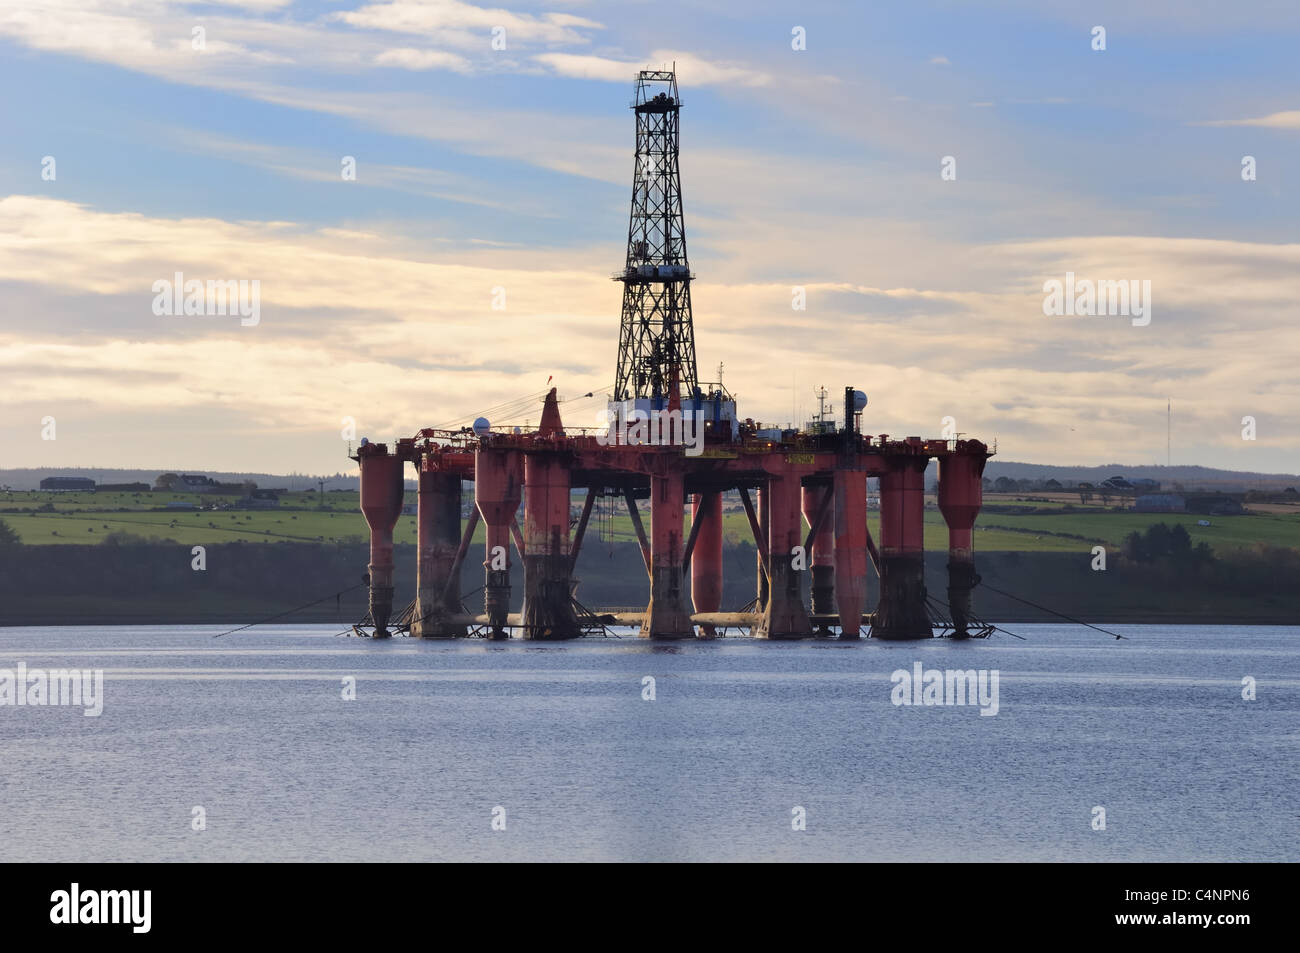 Oil / Gas drilling platform on the Cromarty Firth, Scotland, UK - Stock Image